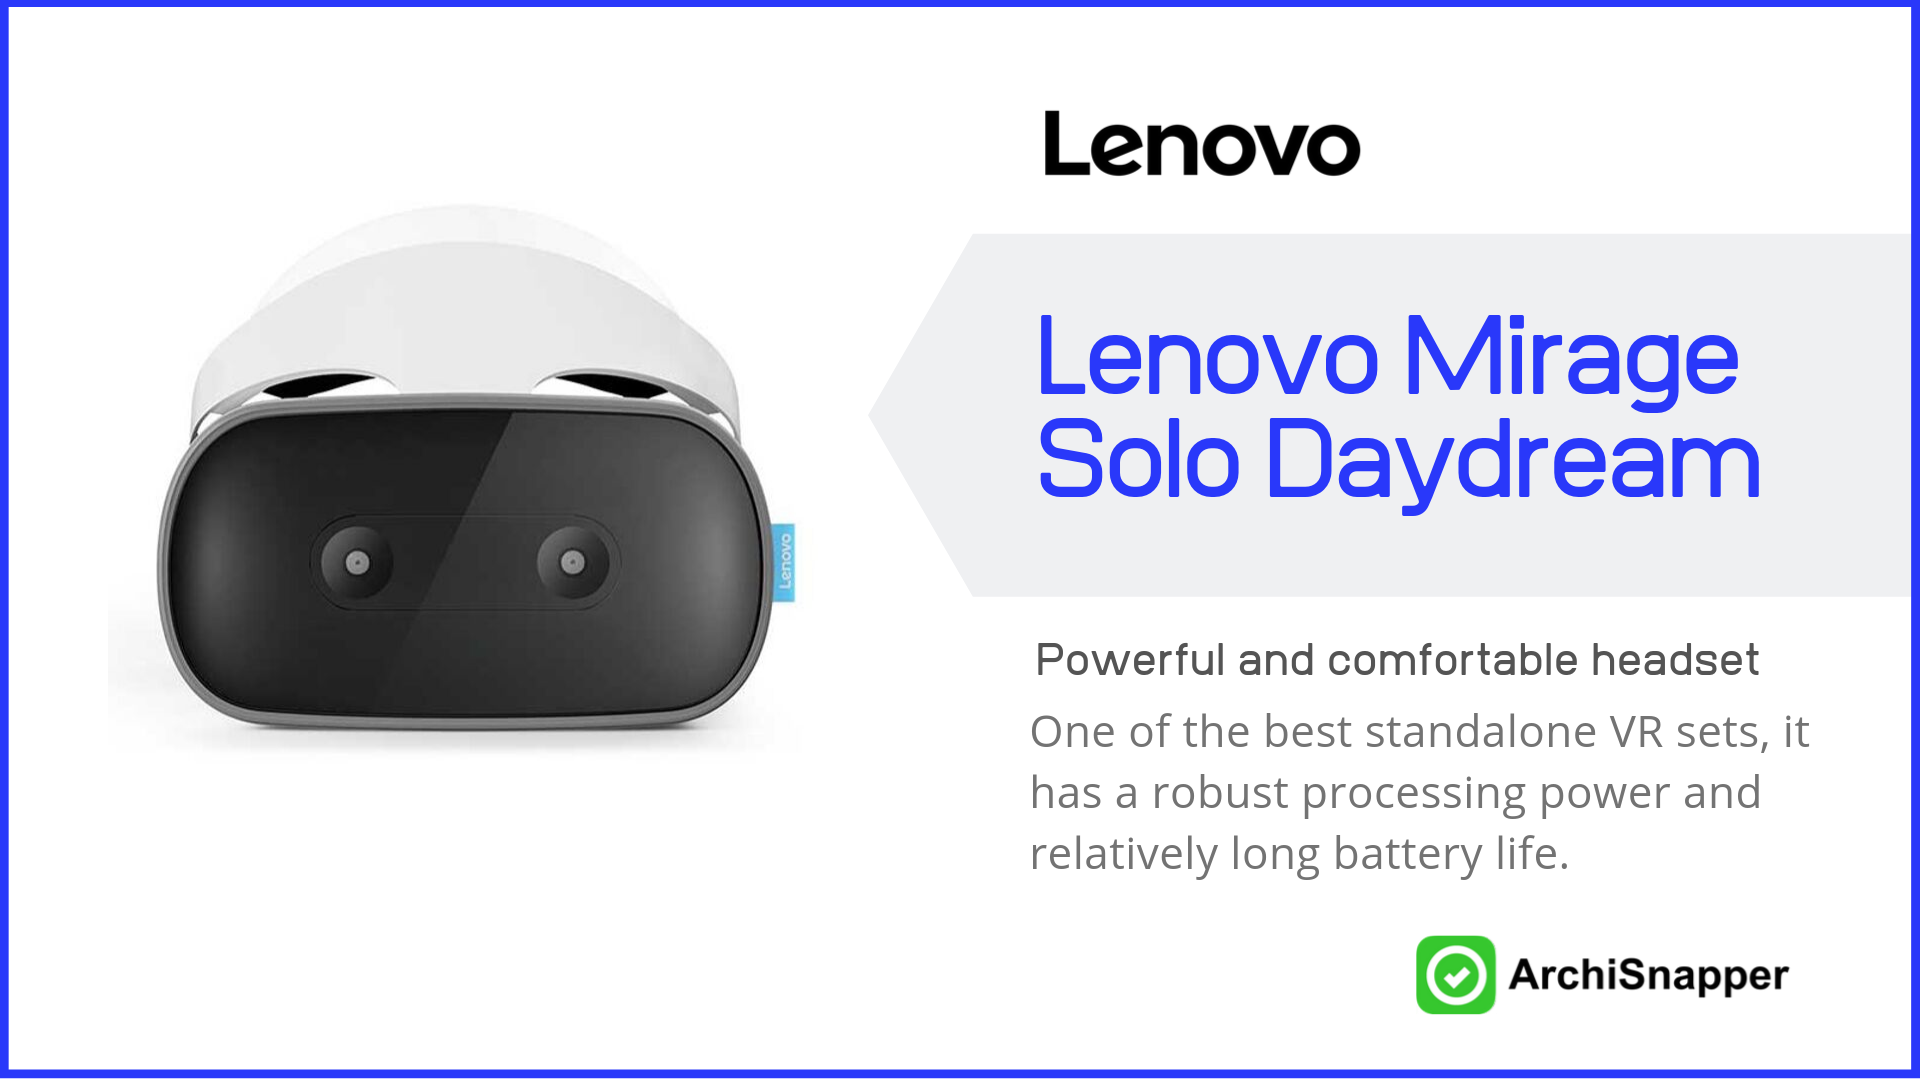 Lenovo Mirage Solo with Daydream | List of the 15 must-have tech tools and accessories ideal for architects presented by Archisnapper